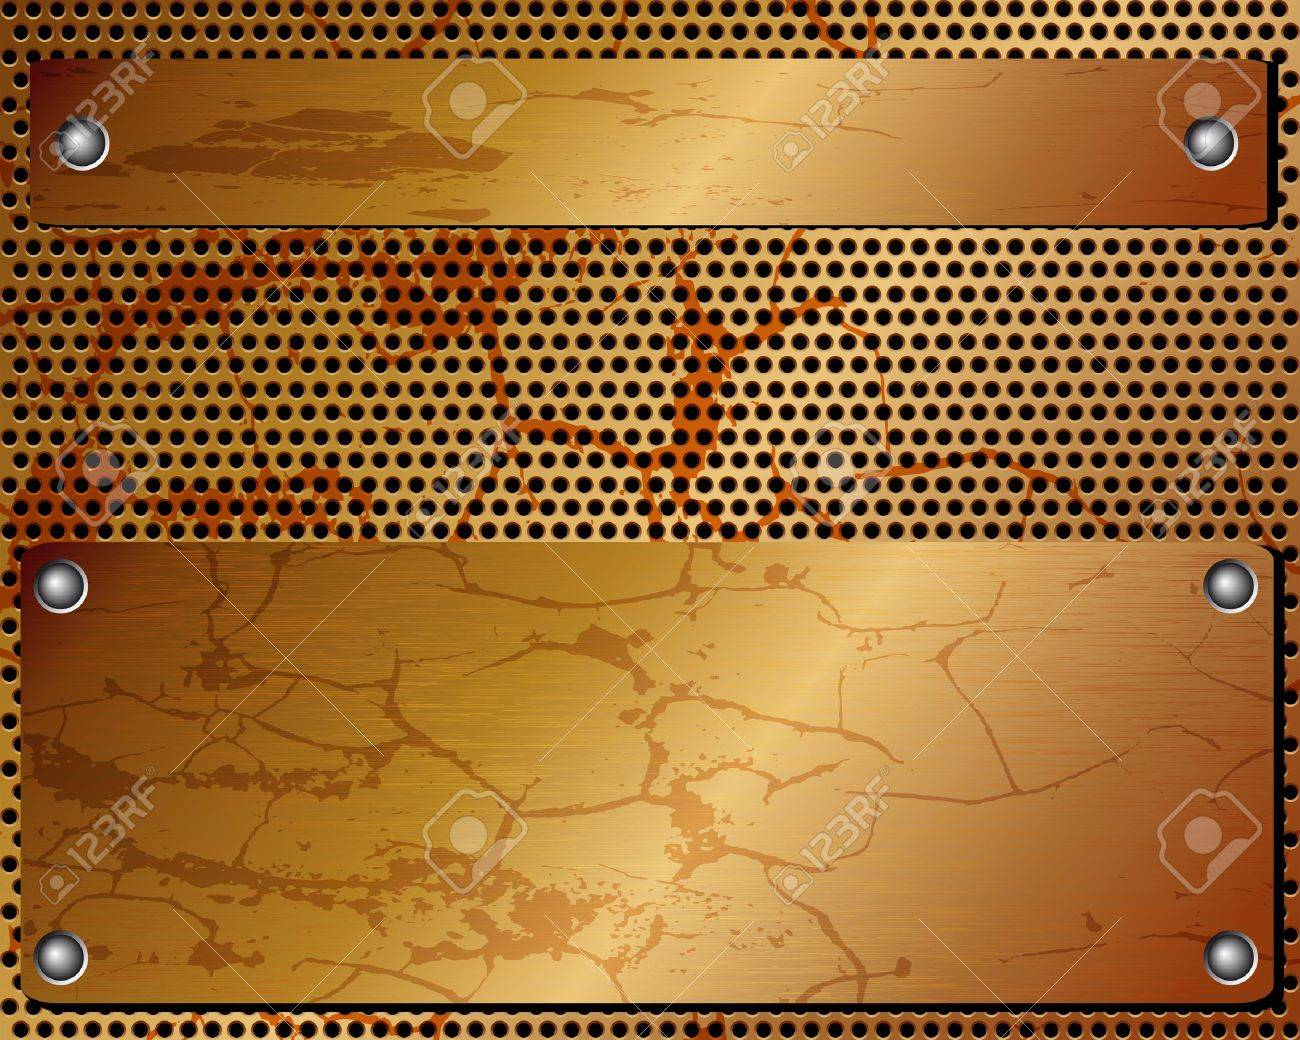 Metallic black background with grid and plate with rivet Stock Vector - 19241351